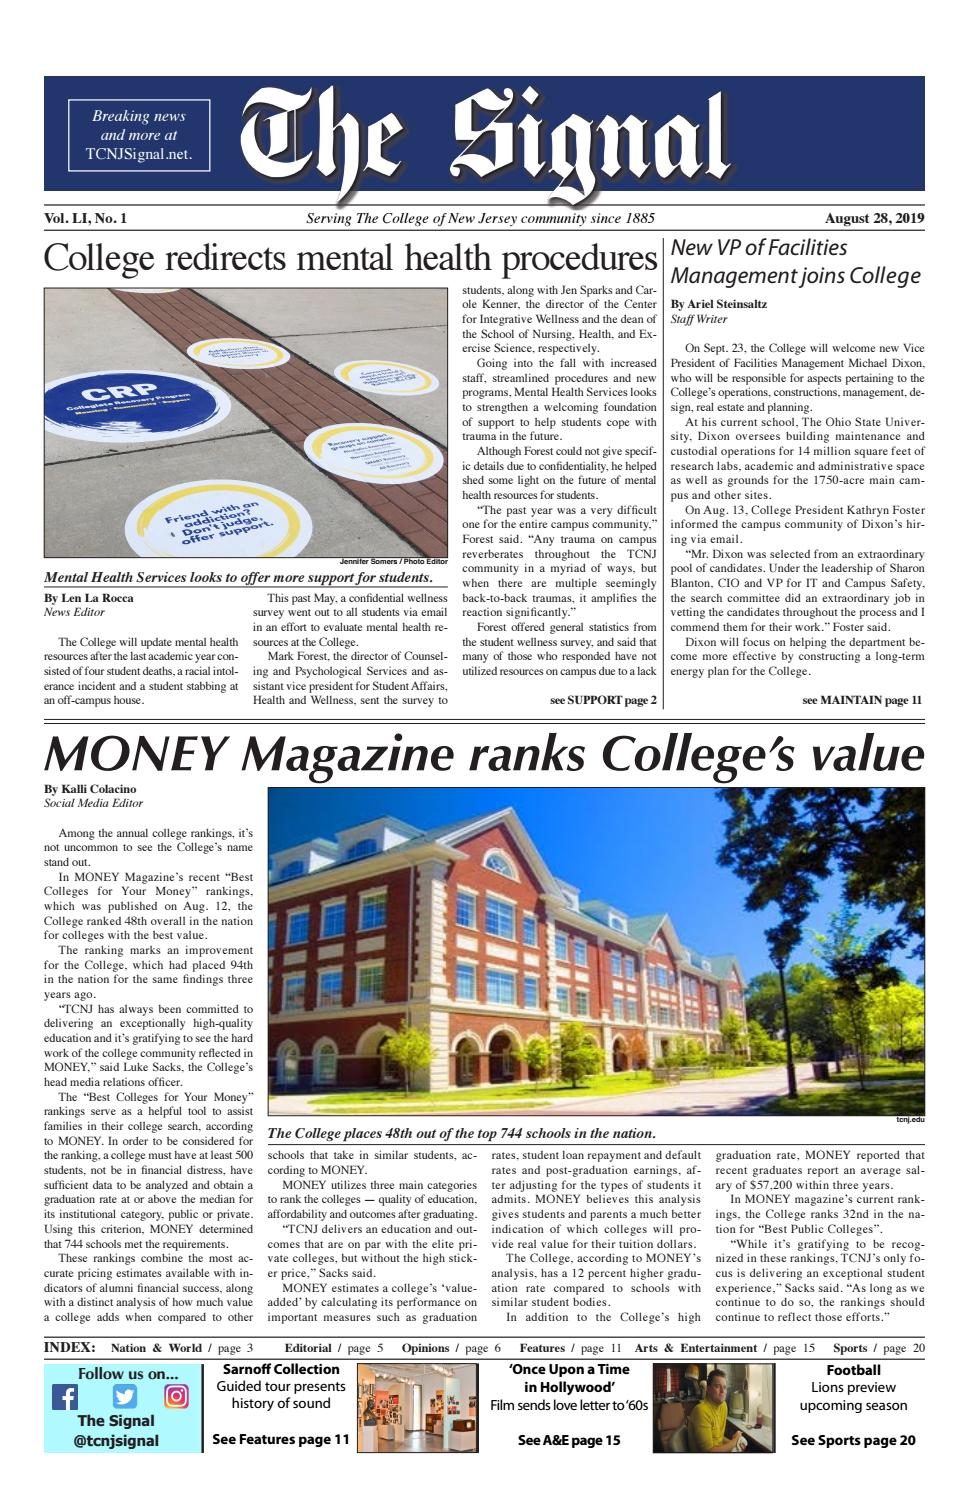 The Signal: Fall '19 No  1 by TCNJ Signal - issuu